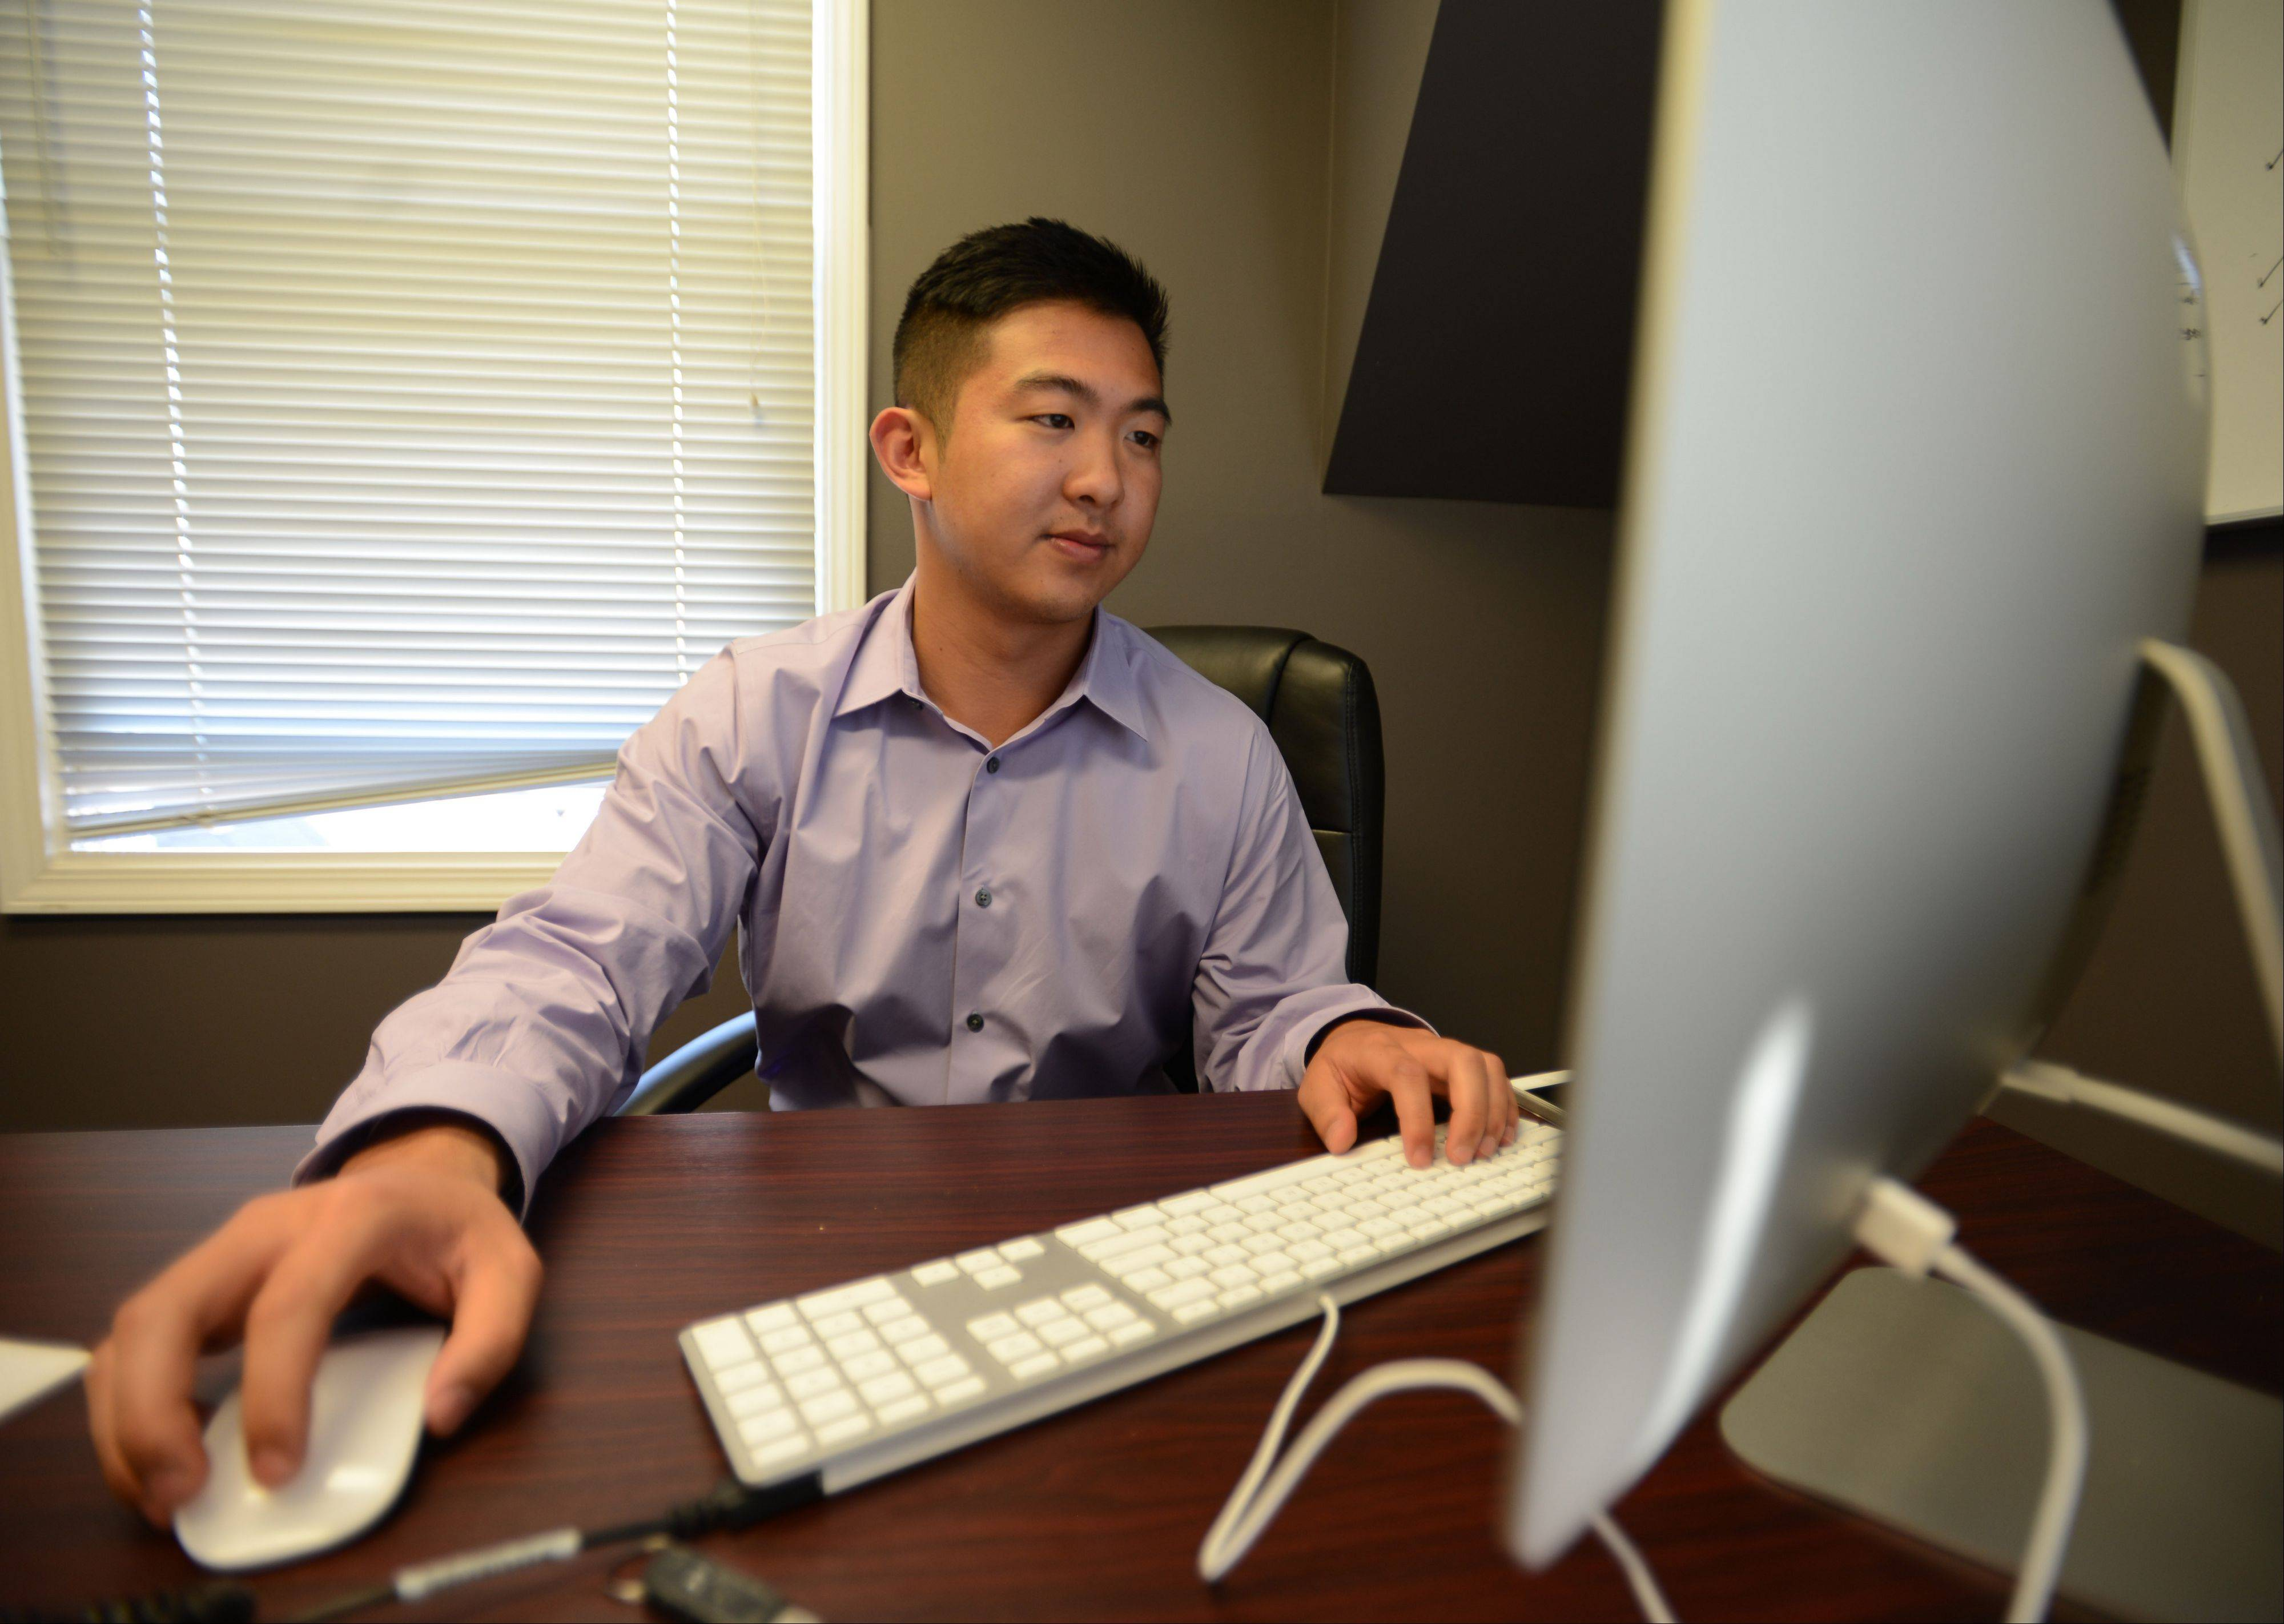 Wilbur You, 22, recently launched a new website for his business, Youtech & Associates in Naperville. The business has two employees in addition to Wilbur, who will be graduating in May from Northern Illinois University with a computer science degree.